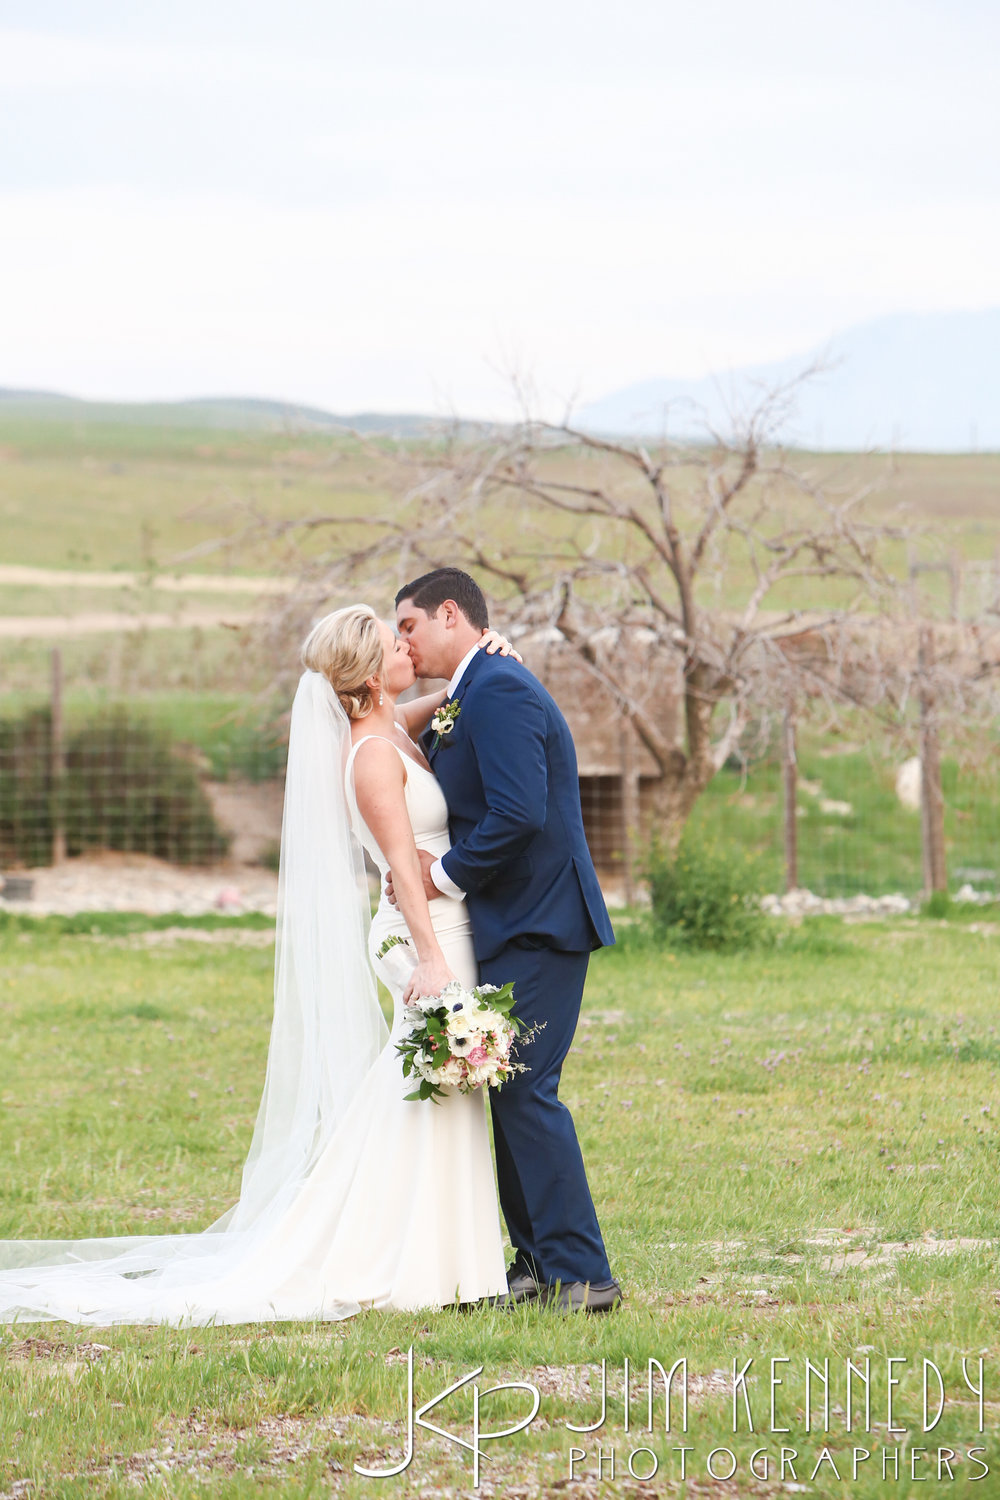 jim_kennedy_photographers_highland_springs_wedding_caitlyn_0135.jpg